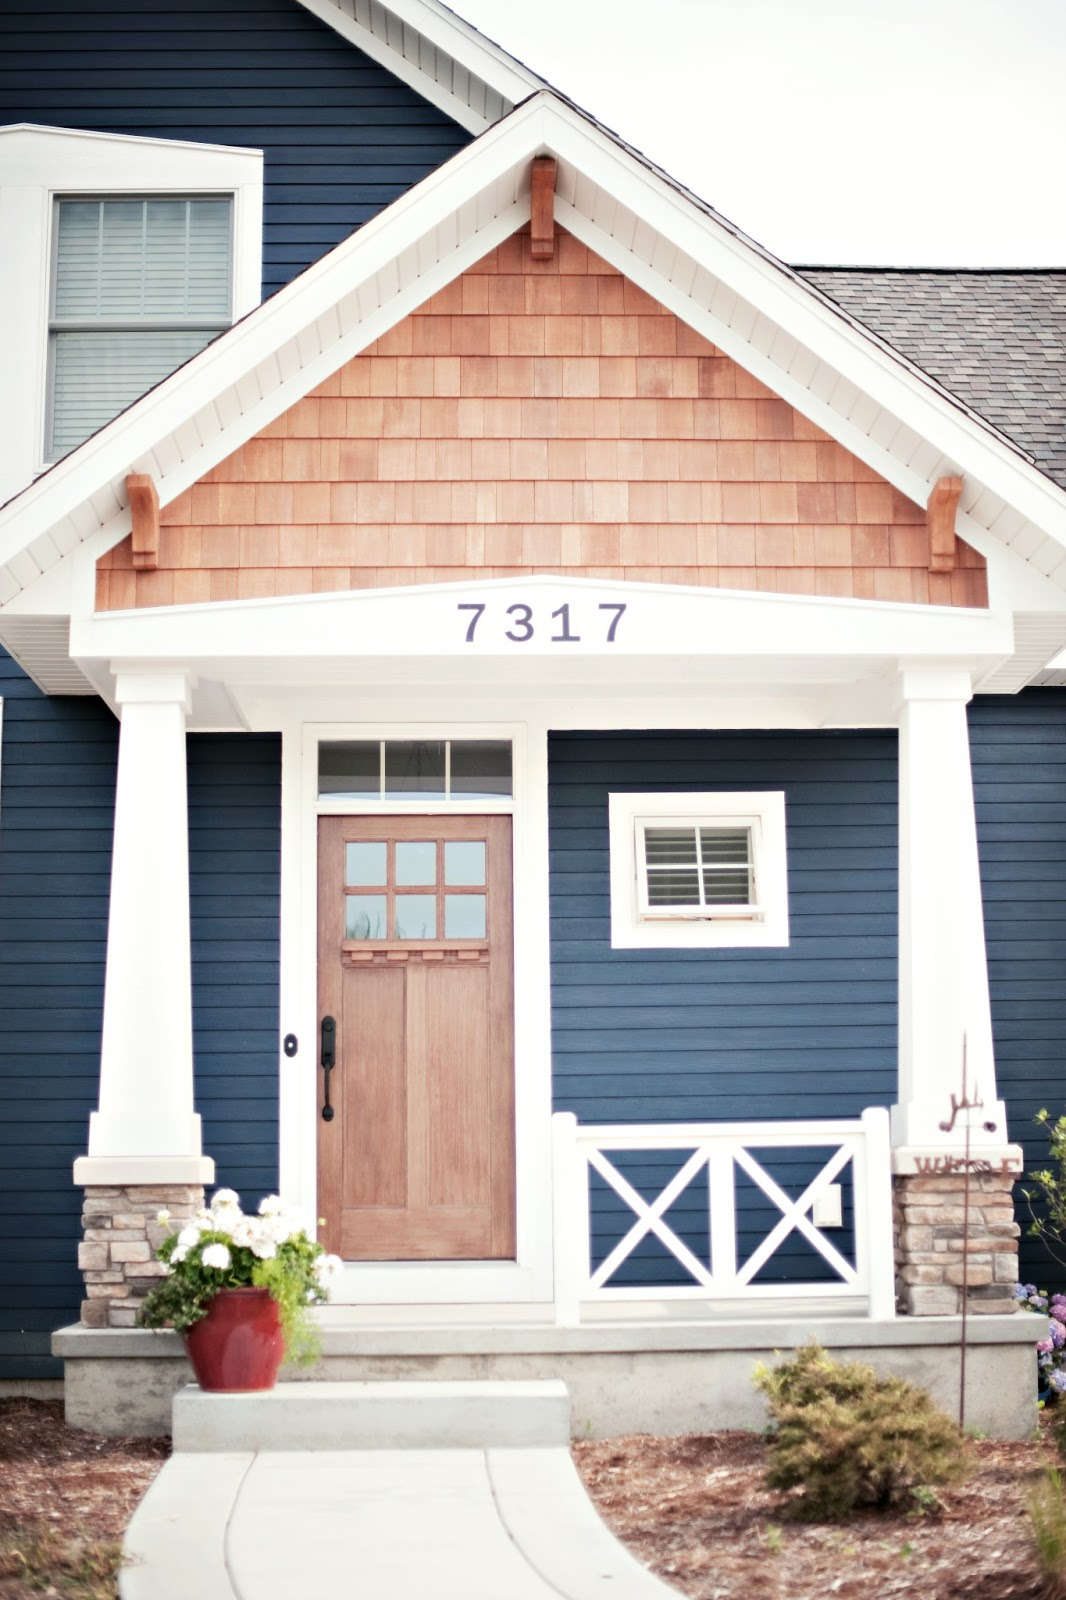 Lisa mende design best navy blue paint colors 8 of my favs for Exterior house paint schemes